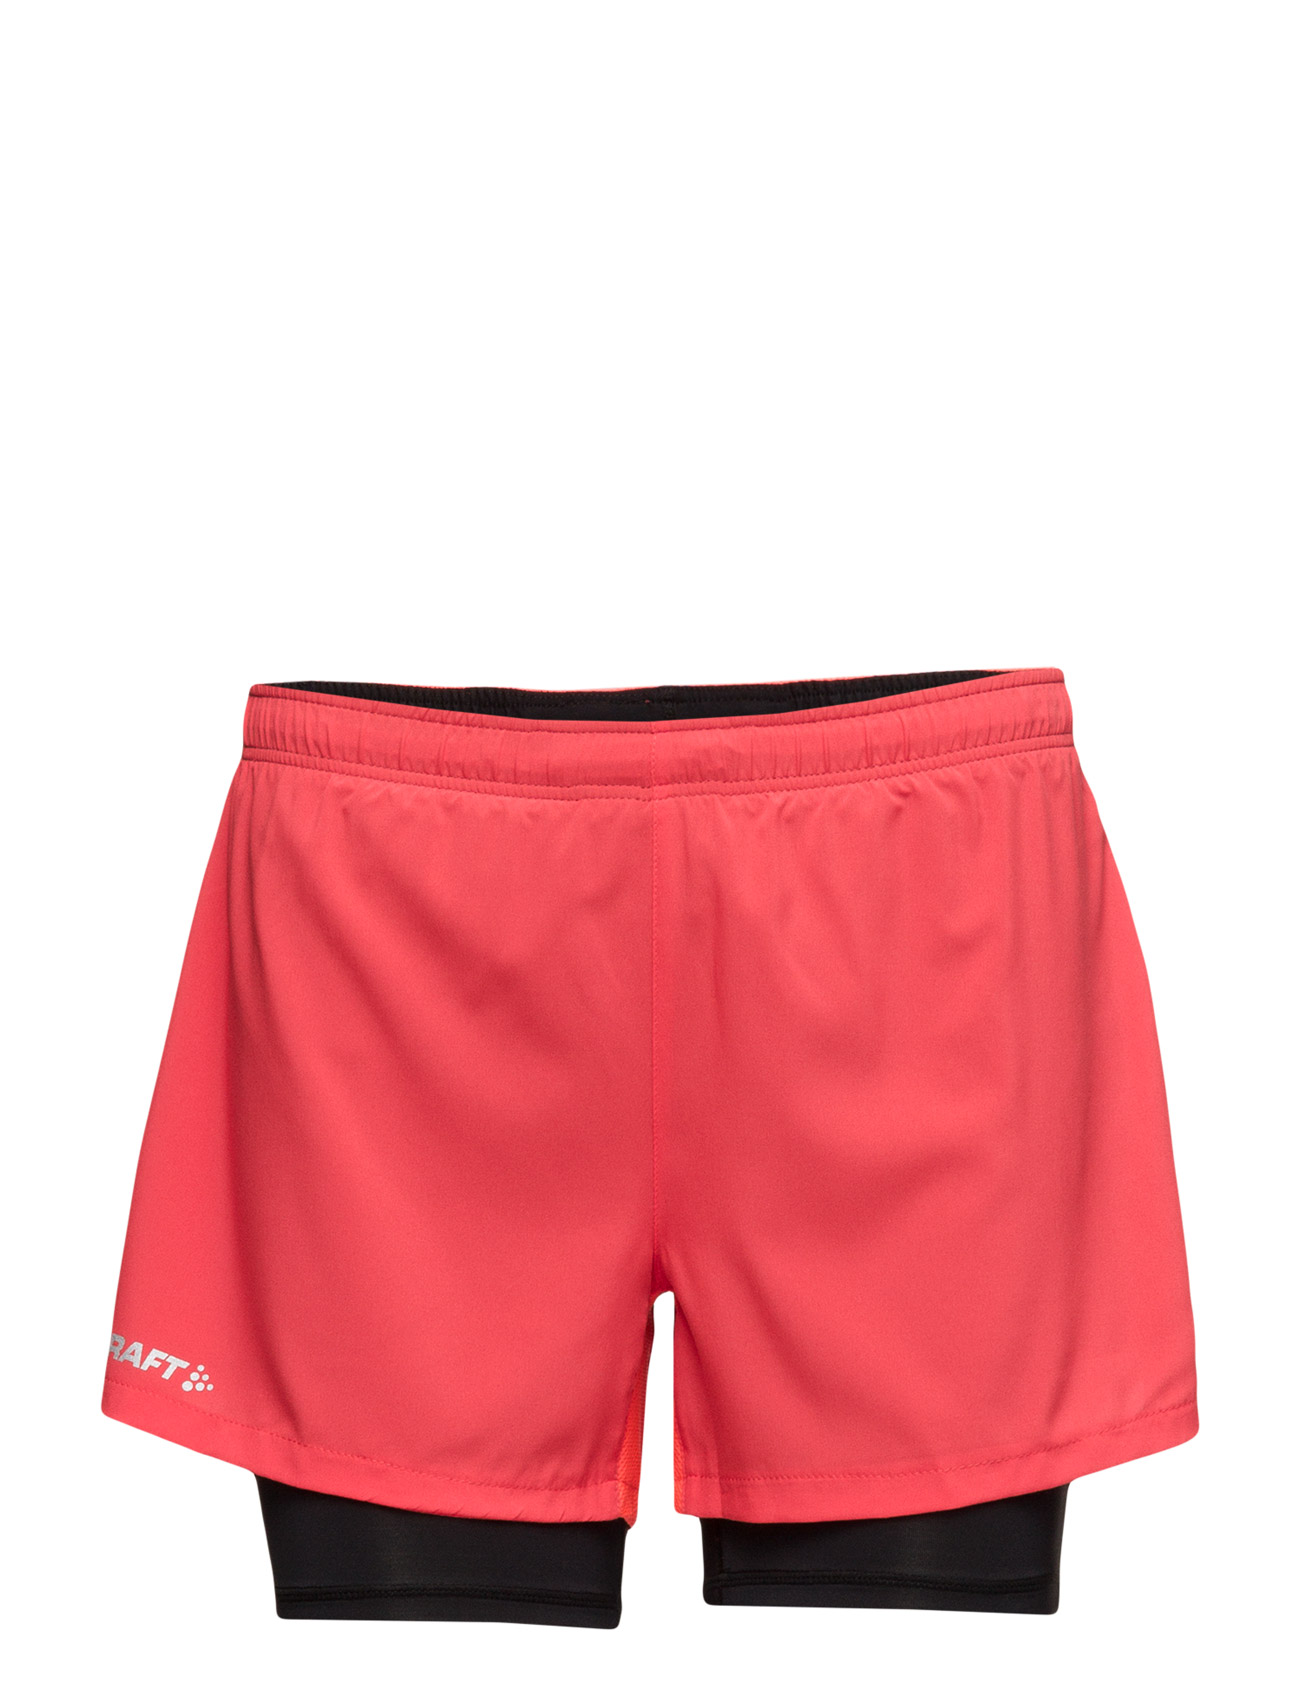 Craft Focus 2-1 Shorts W P Line Smoot Craft Træningsshorts til Damer i